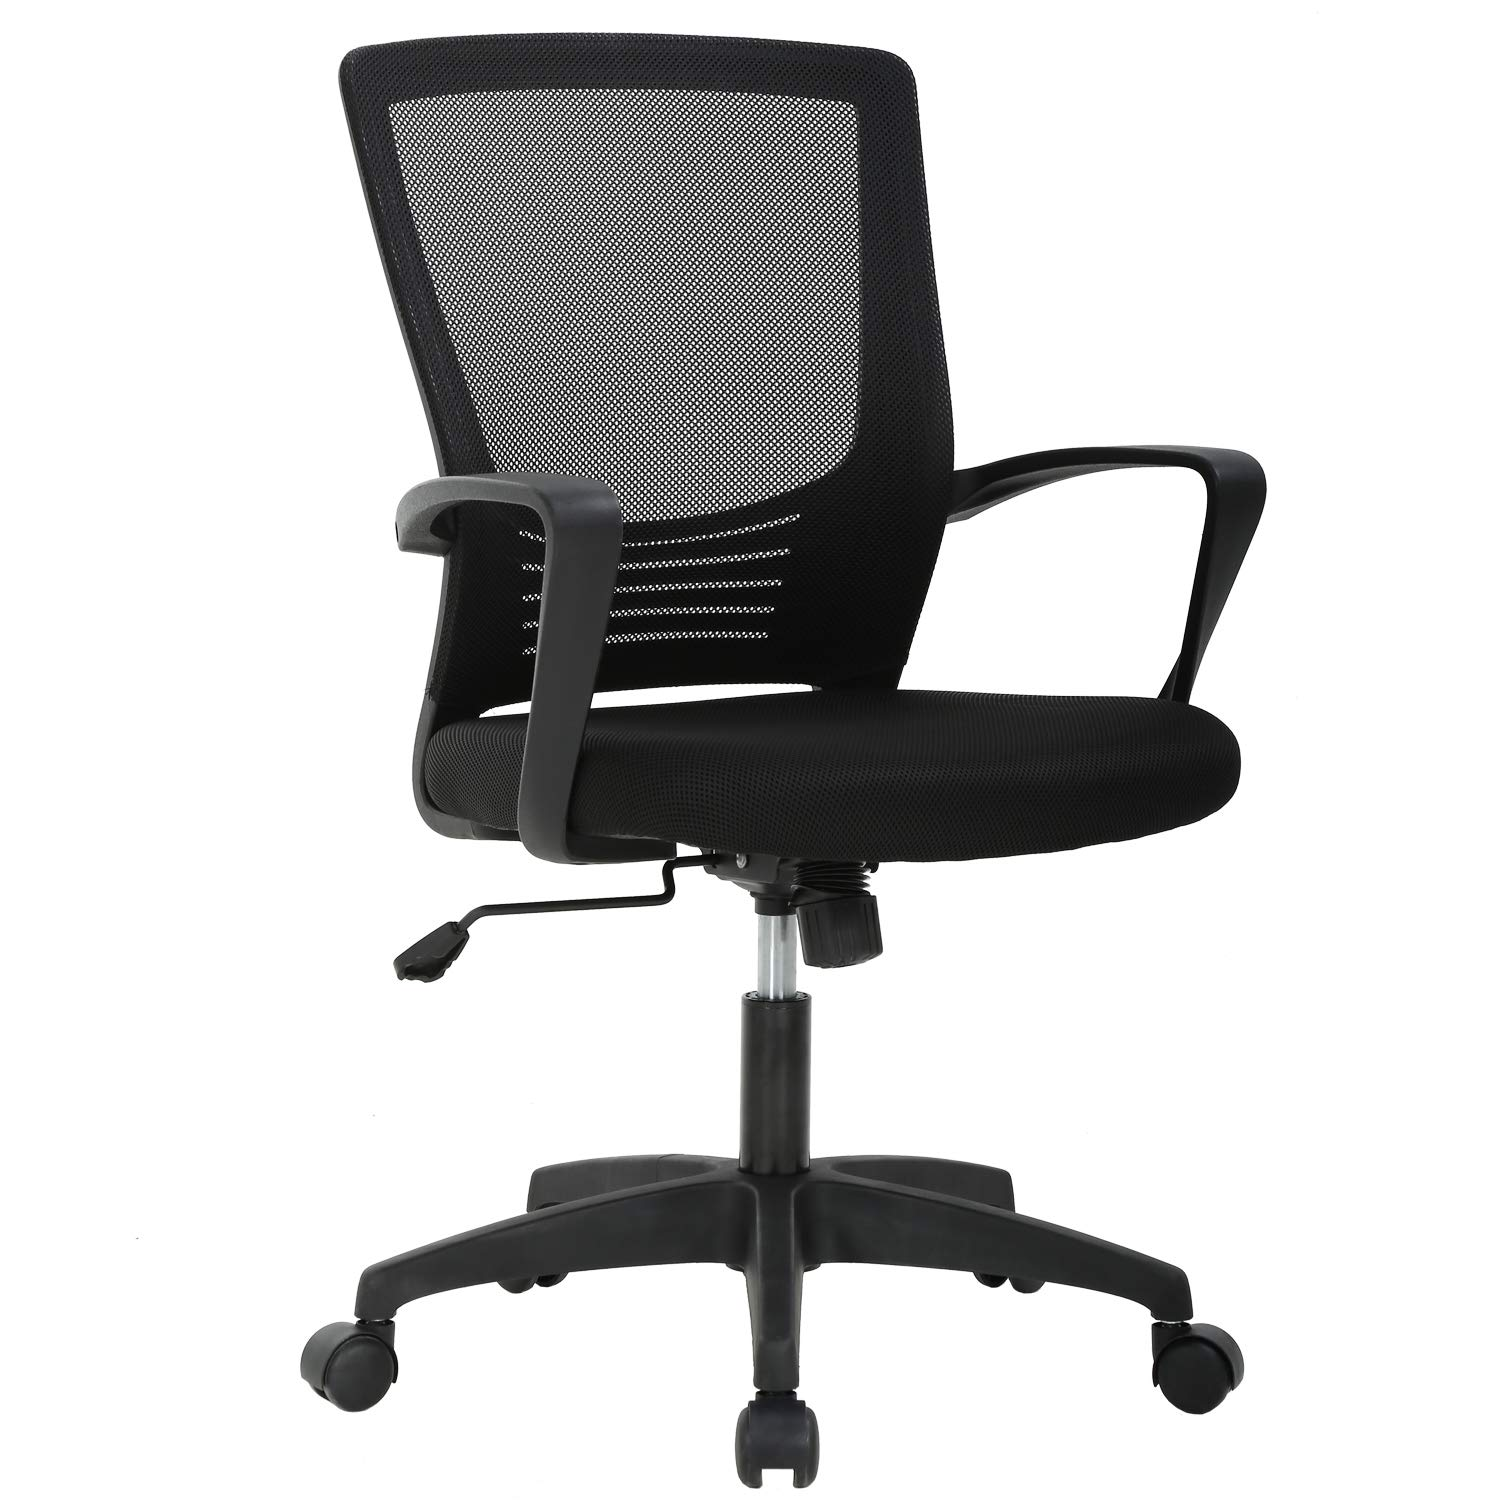 Ergonomic Office Chair Cheap Desk Chair Mesh Computer Chair with Lumbar Support Arms Modern Cute Swivel Rolling Task Mid Back Executive Chair for Women Men Adults Girls,Black by BestOffice